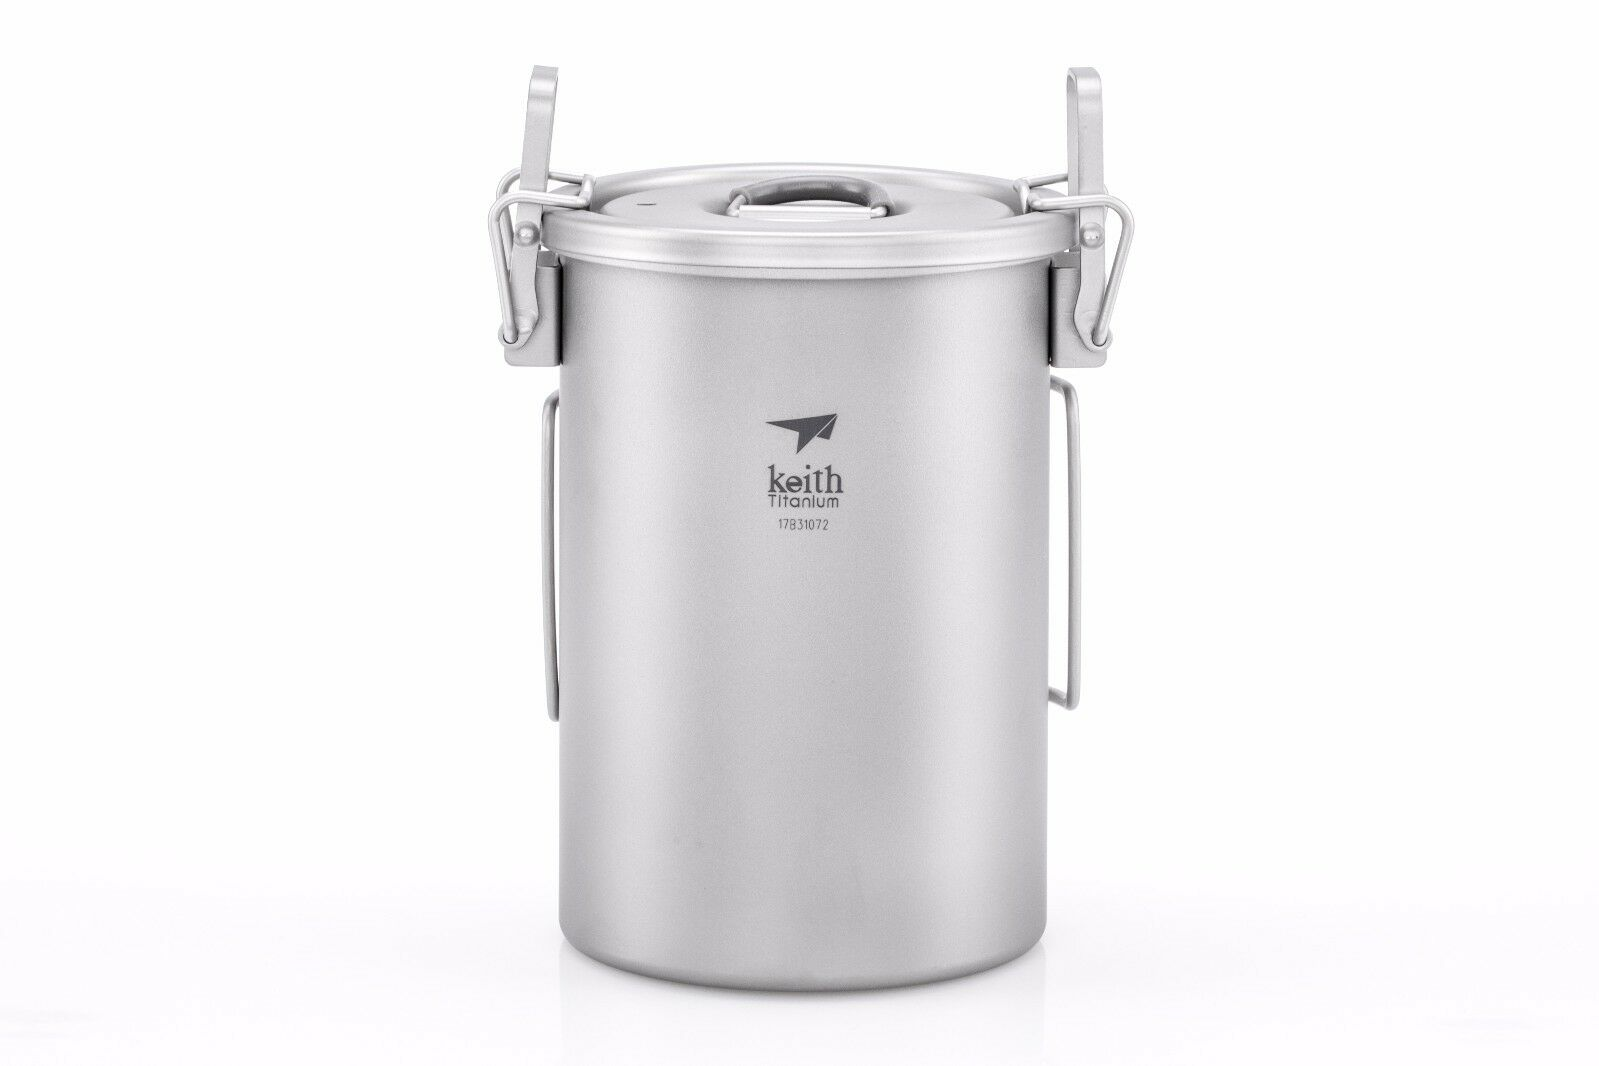 Keith Titanium Ti6300 Multifunctional Cooker (Shipped from California, USA)